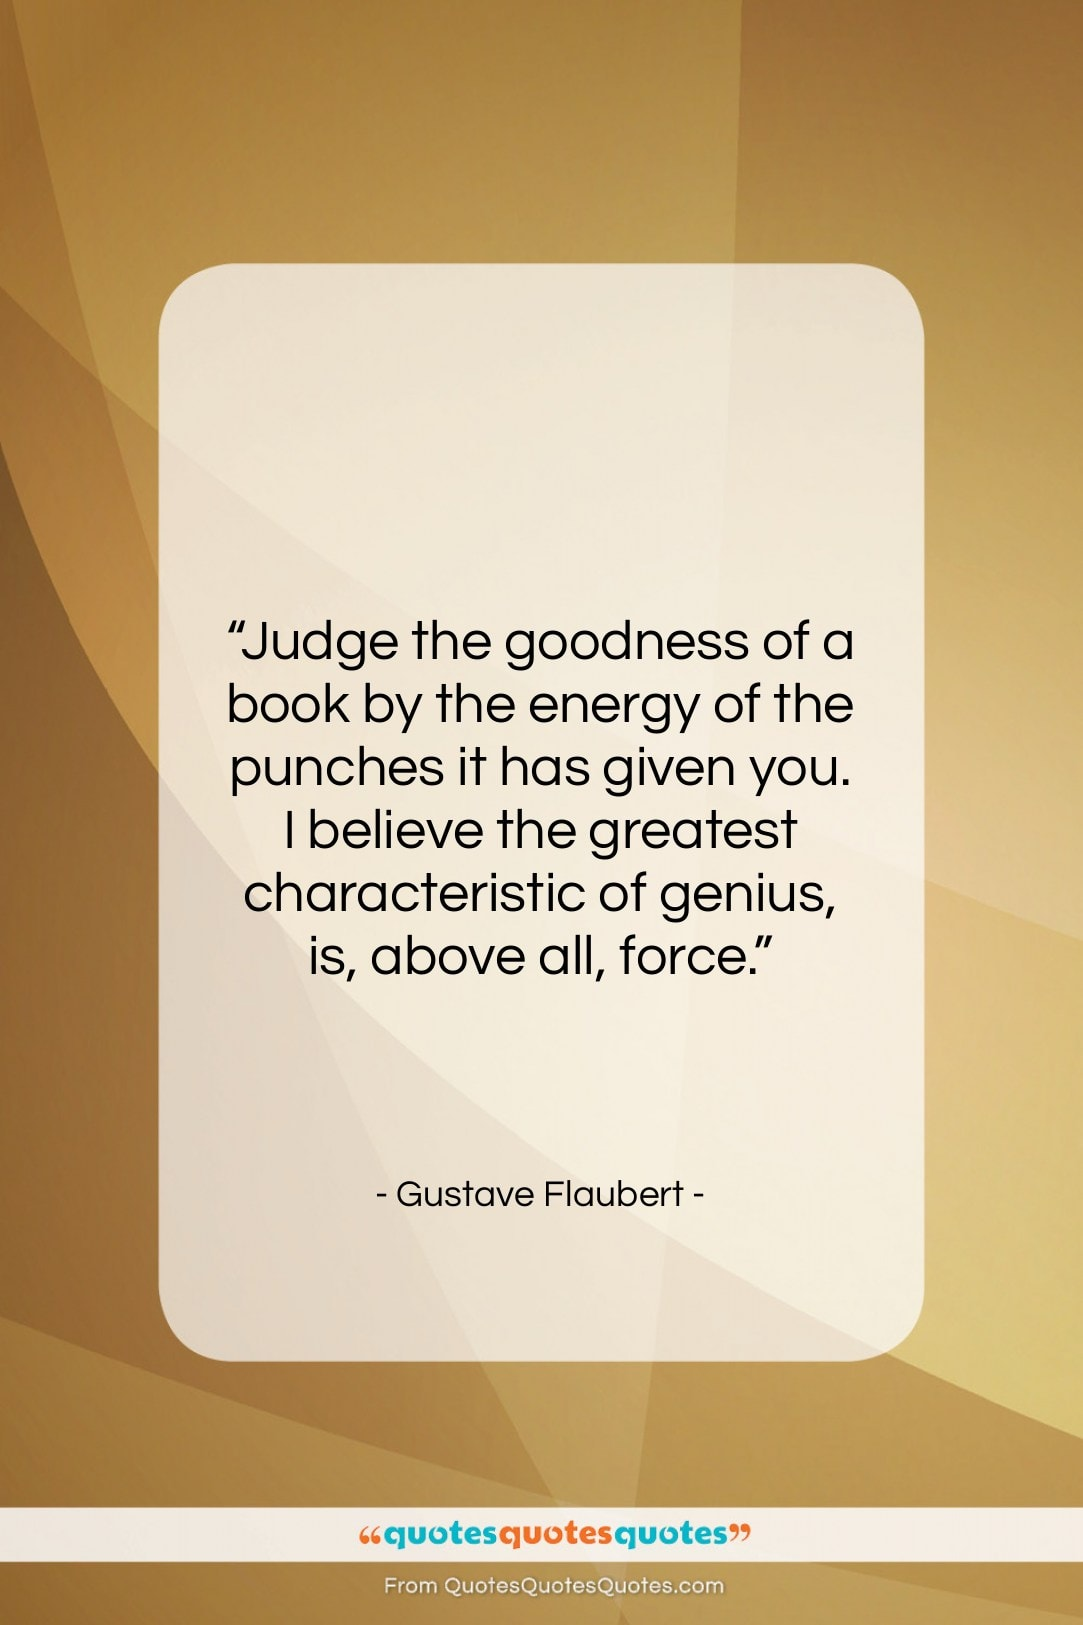 """Gustave Flaubert quote: """"Judge the goodness of a book by…""""- at QuotesQuotesQuotes.com"""